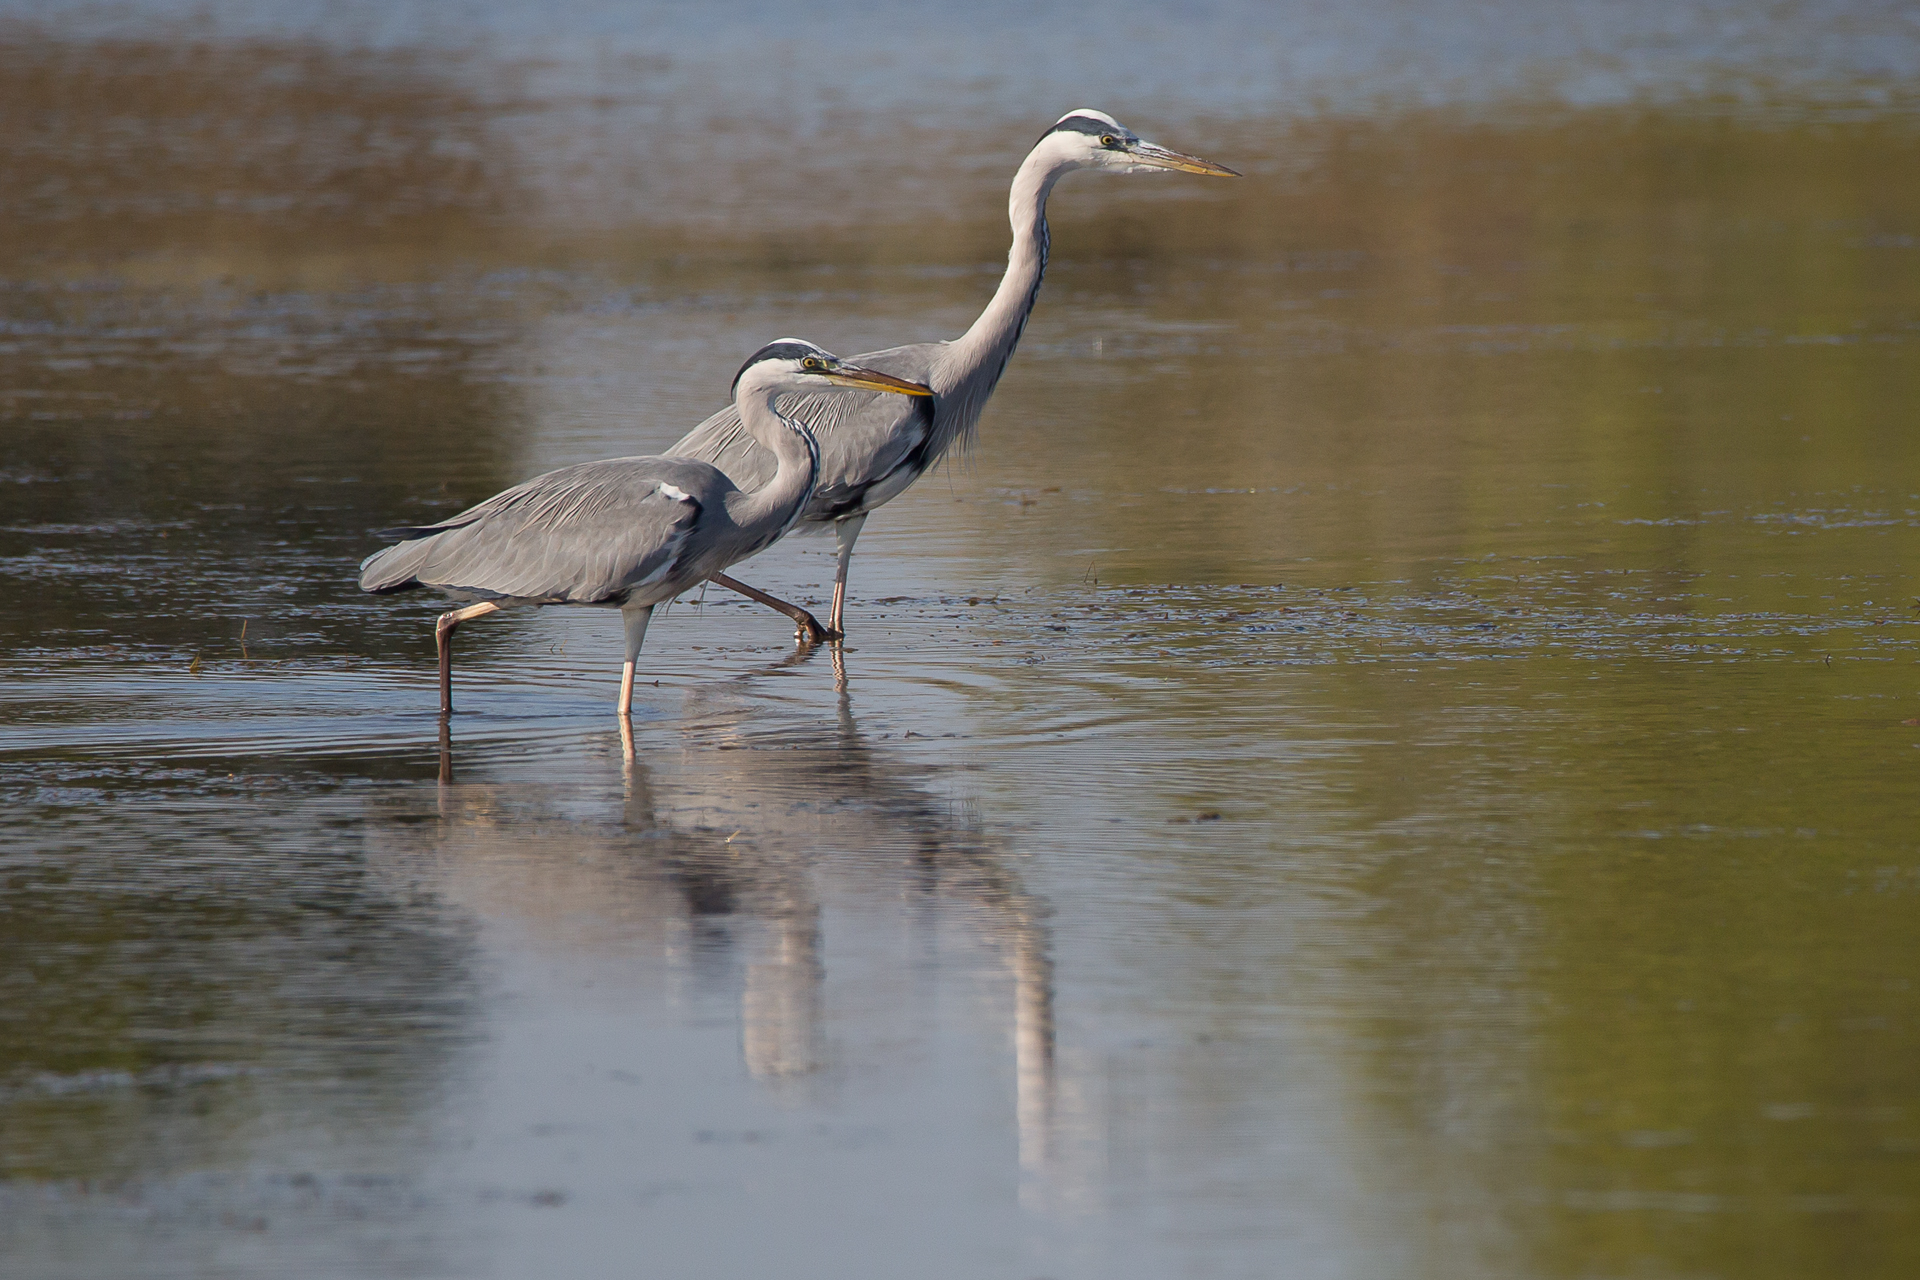 nature-et-photographie-photographie-animaliere-herons-cendres-2